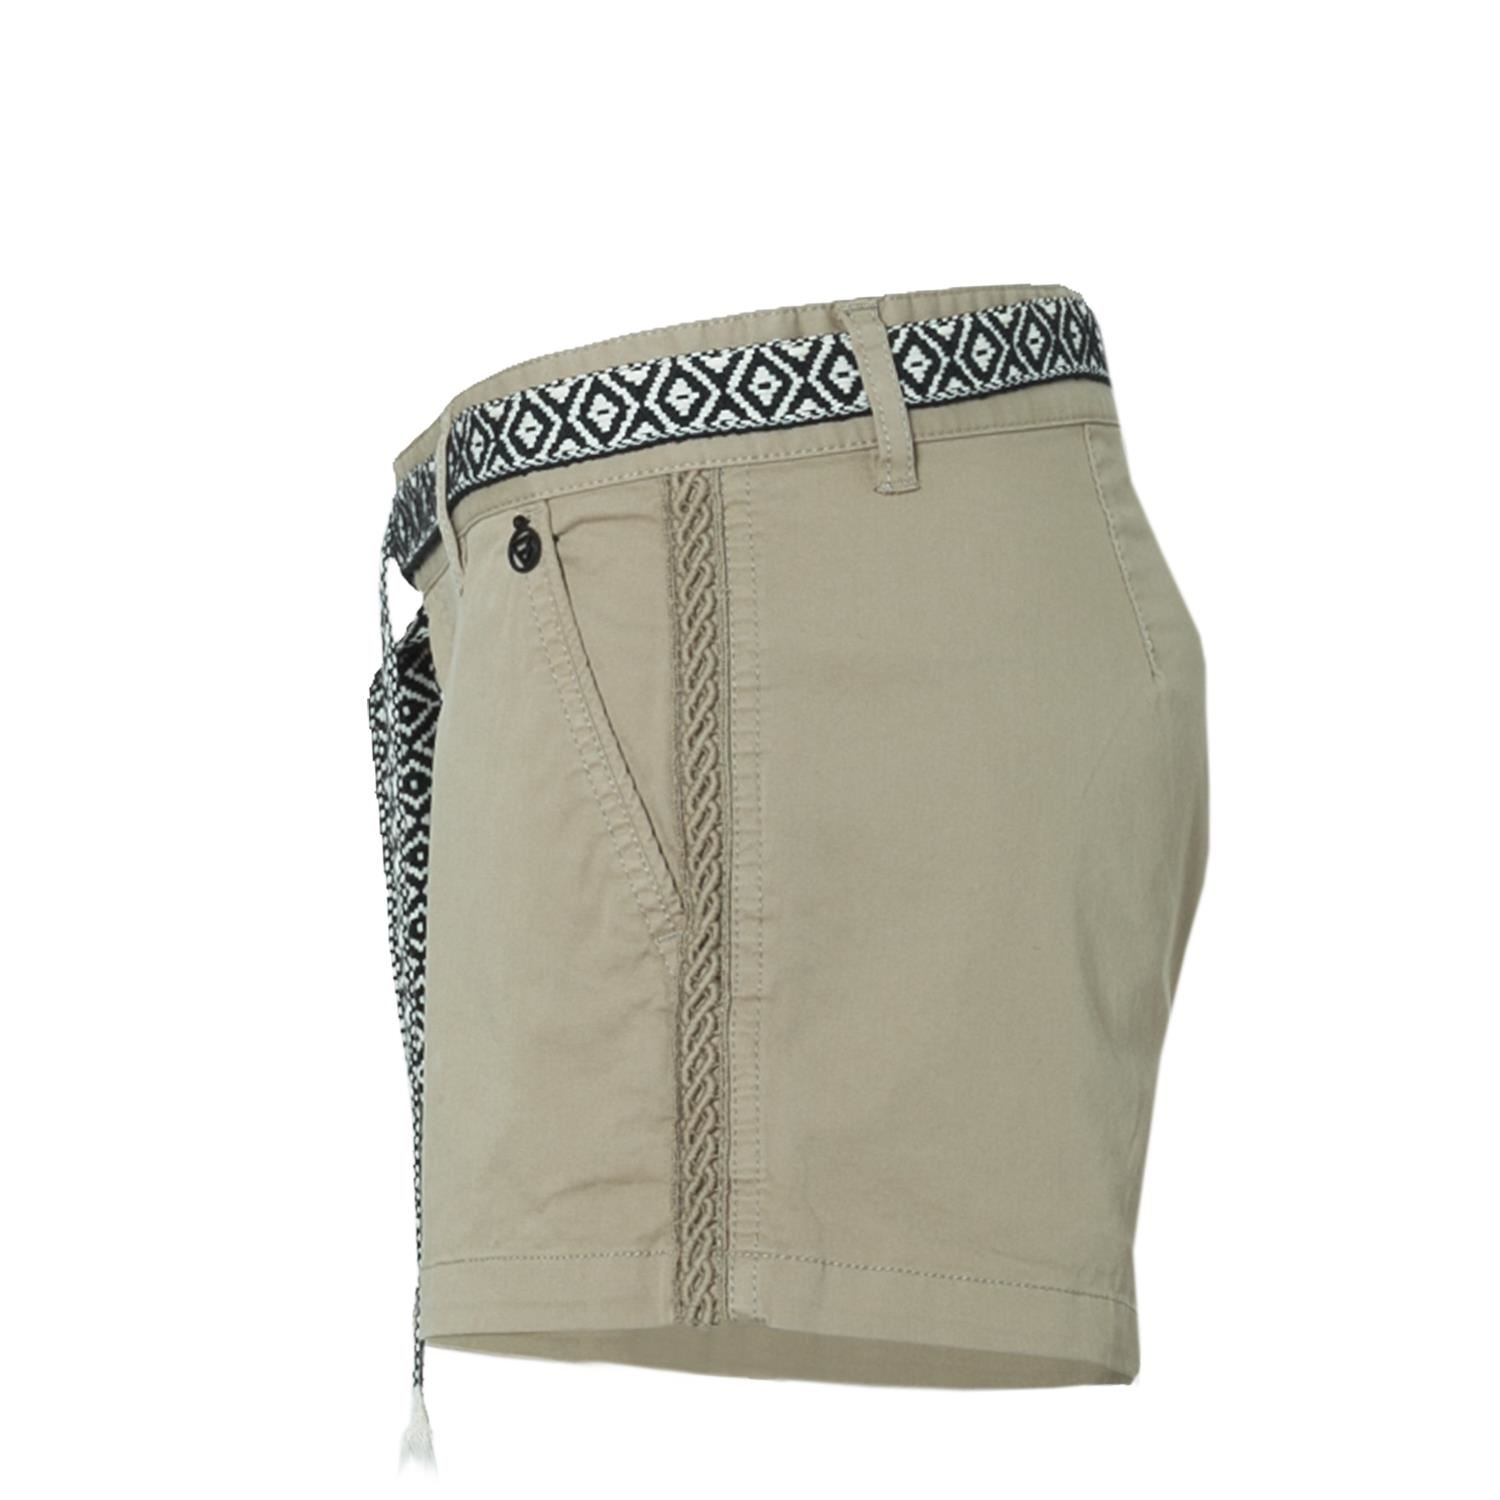 be93eaa14aa0f2 Brunotti Faros (green) - women shorts - Brunotti online shop